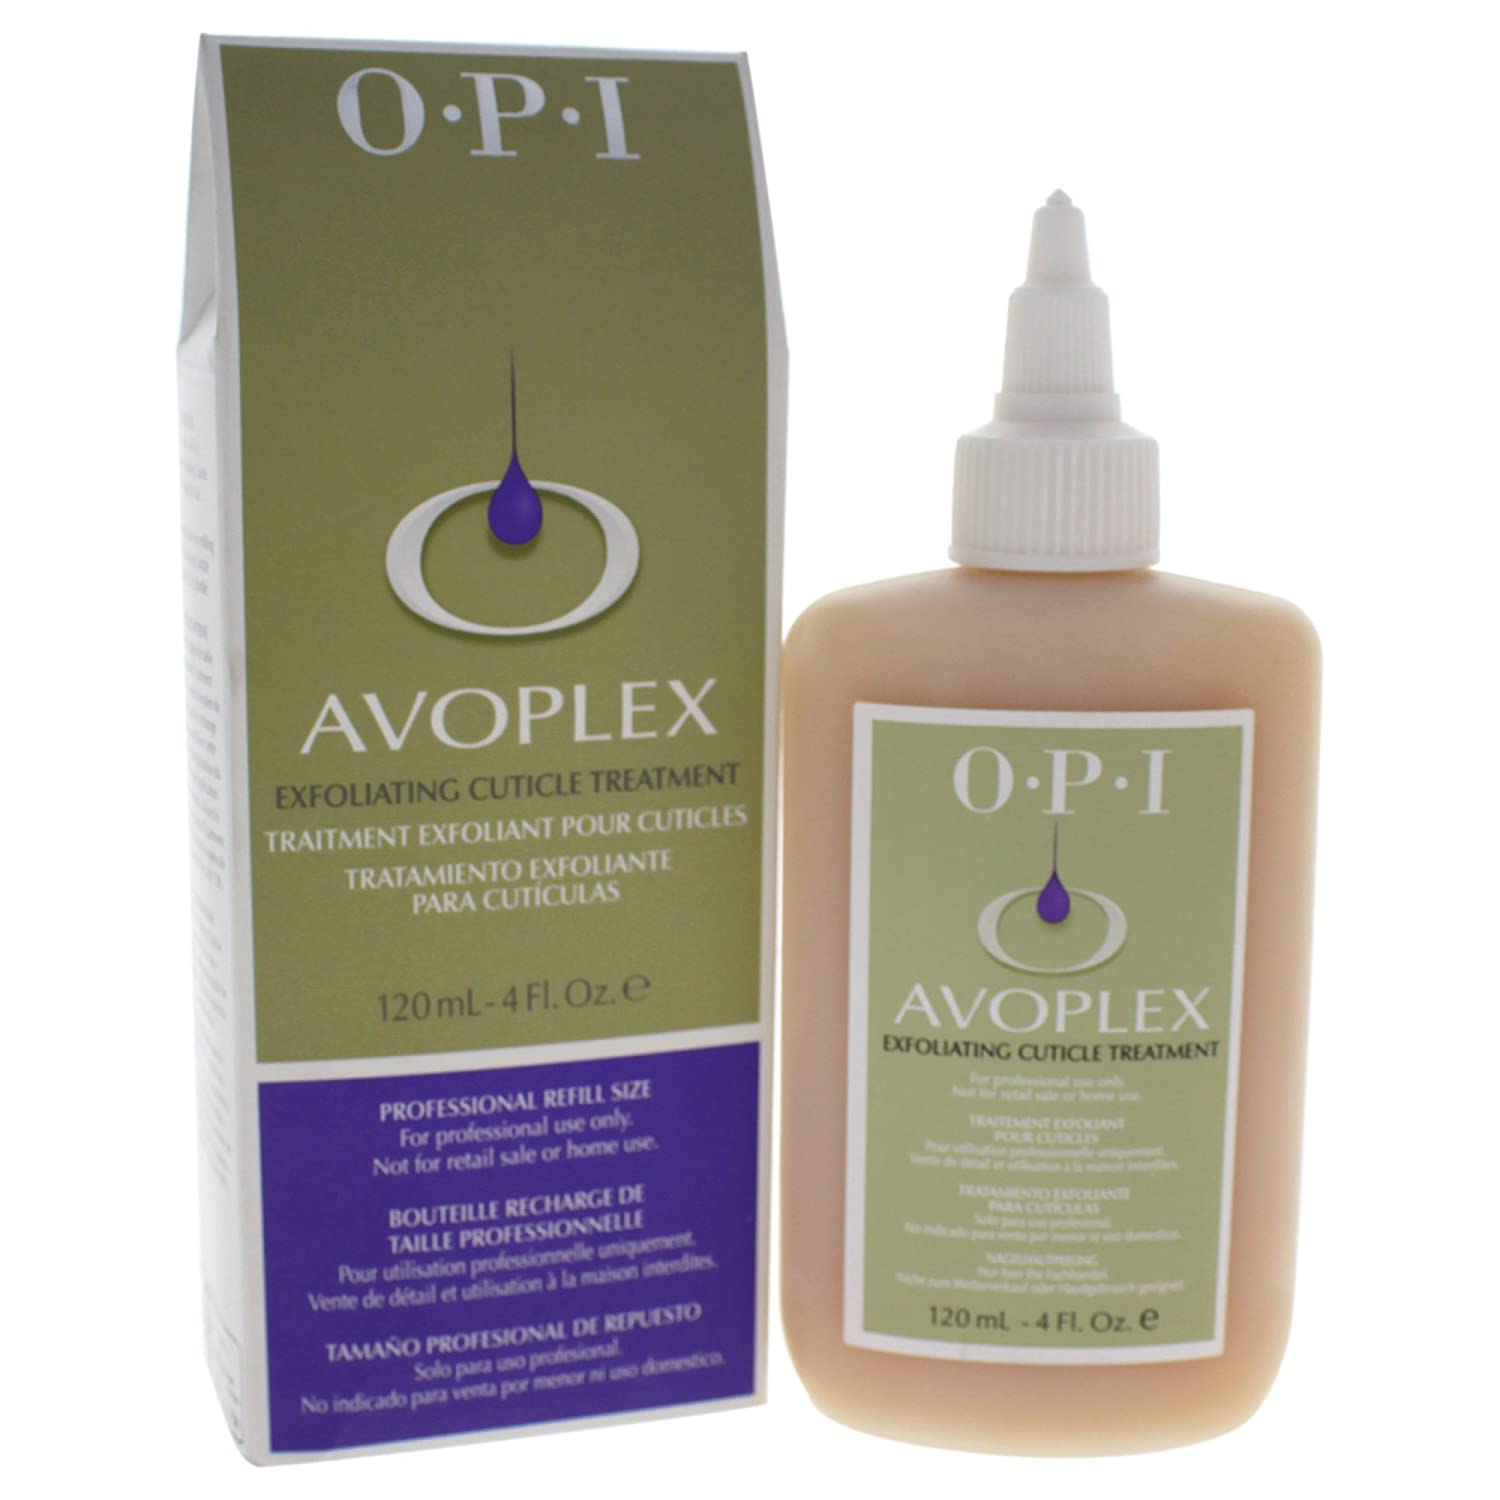 OPI Avoplex Exfoliante Para Cutículas - 120 ml.: Amazon.es